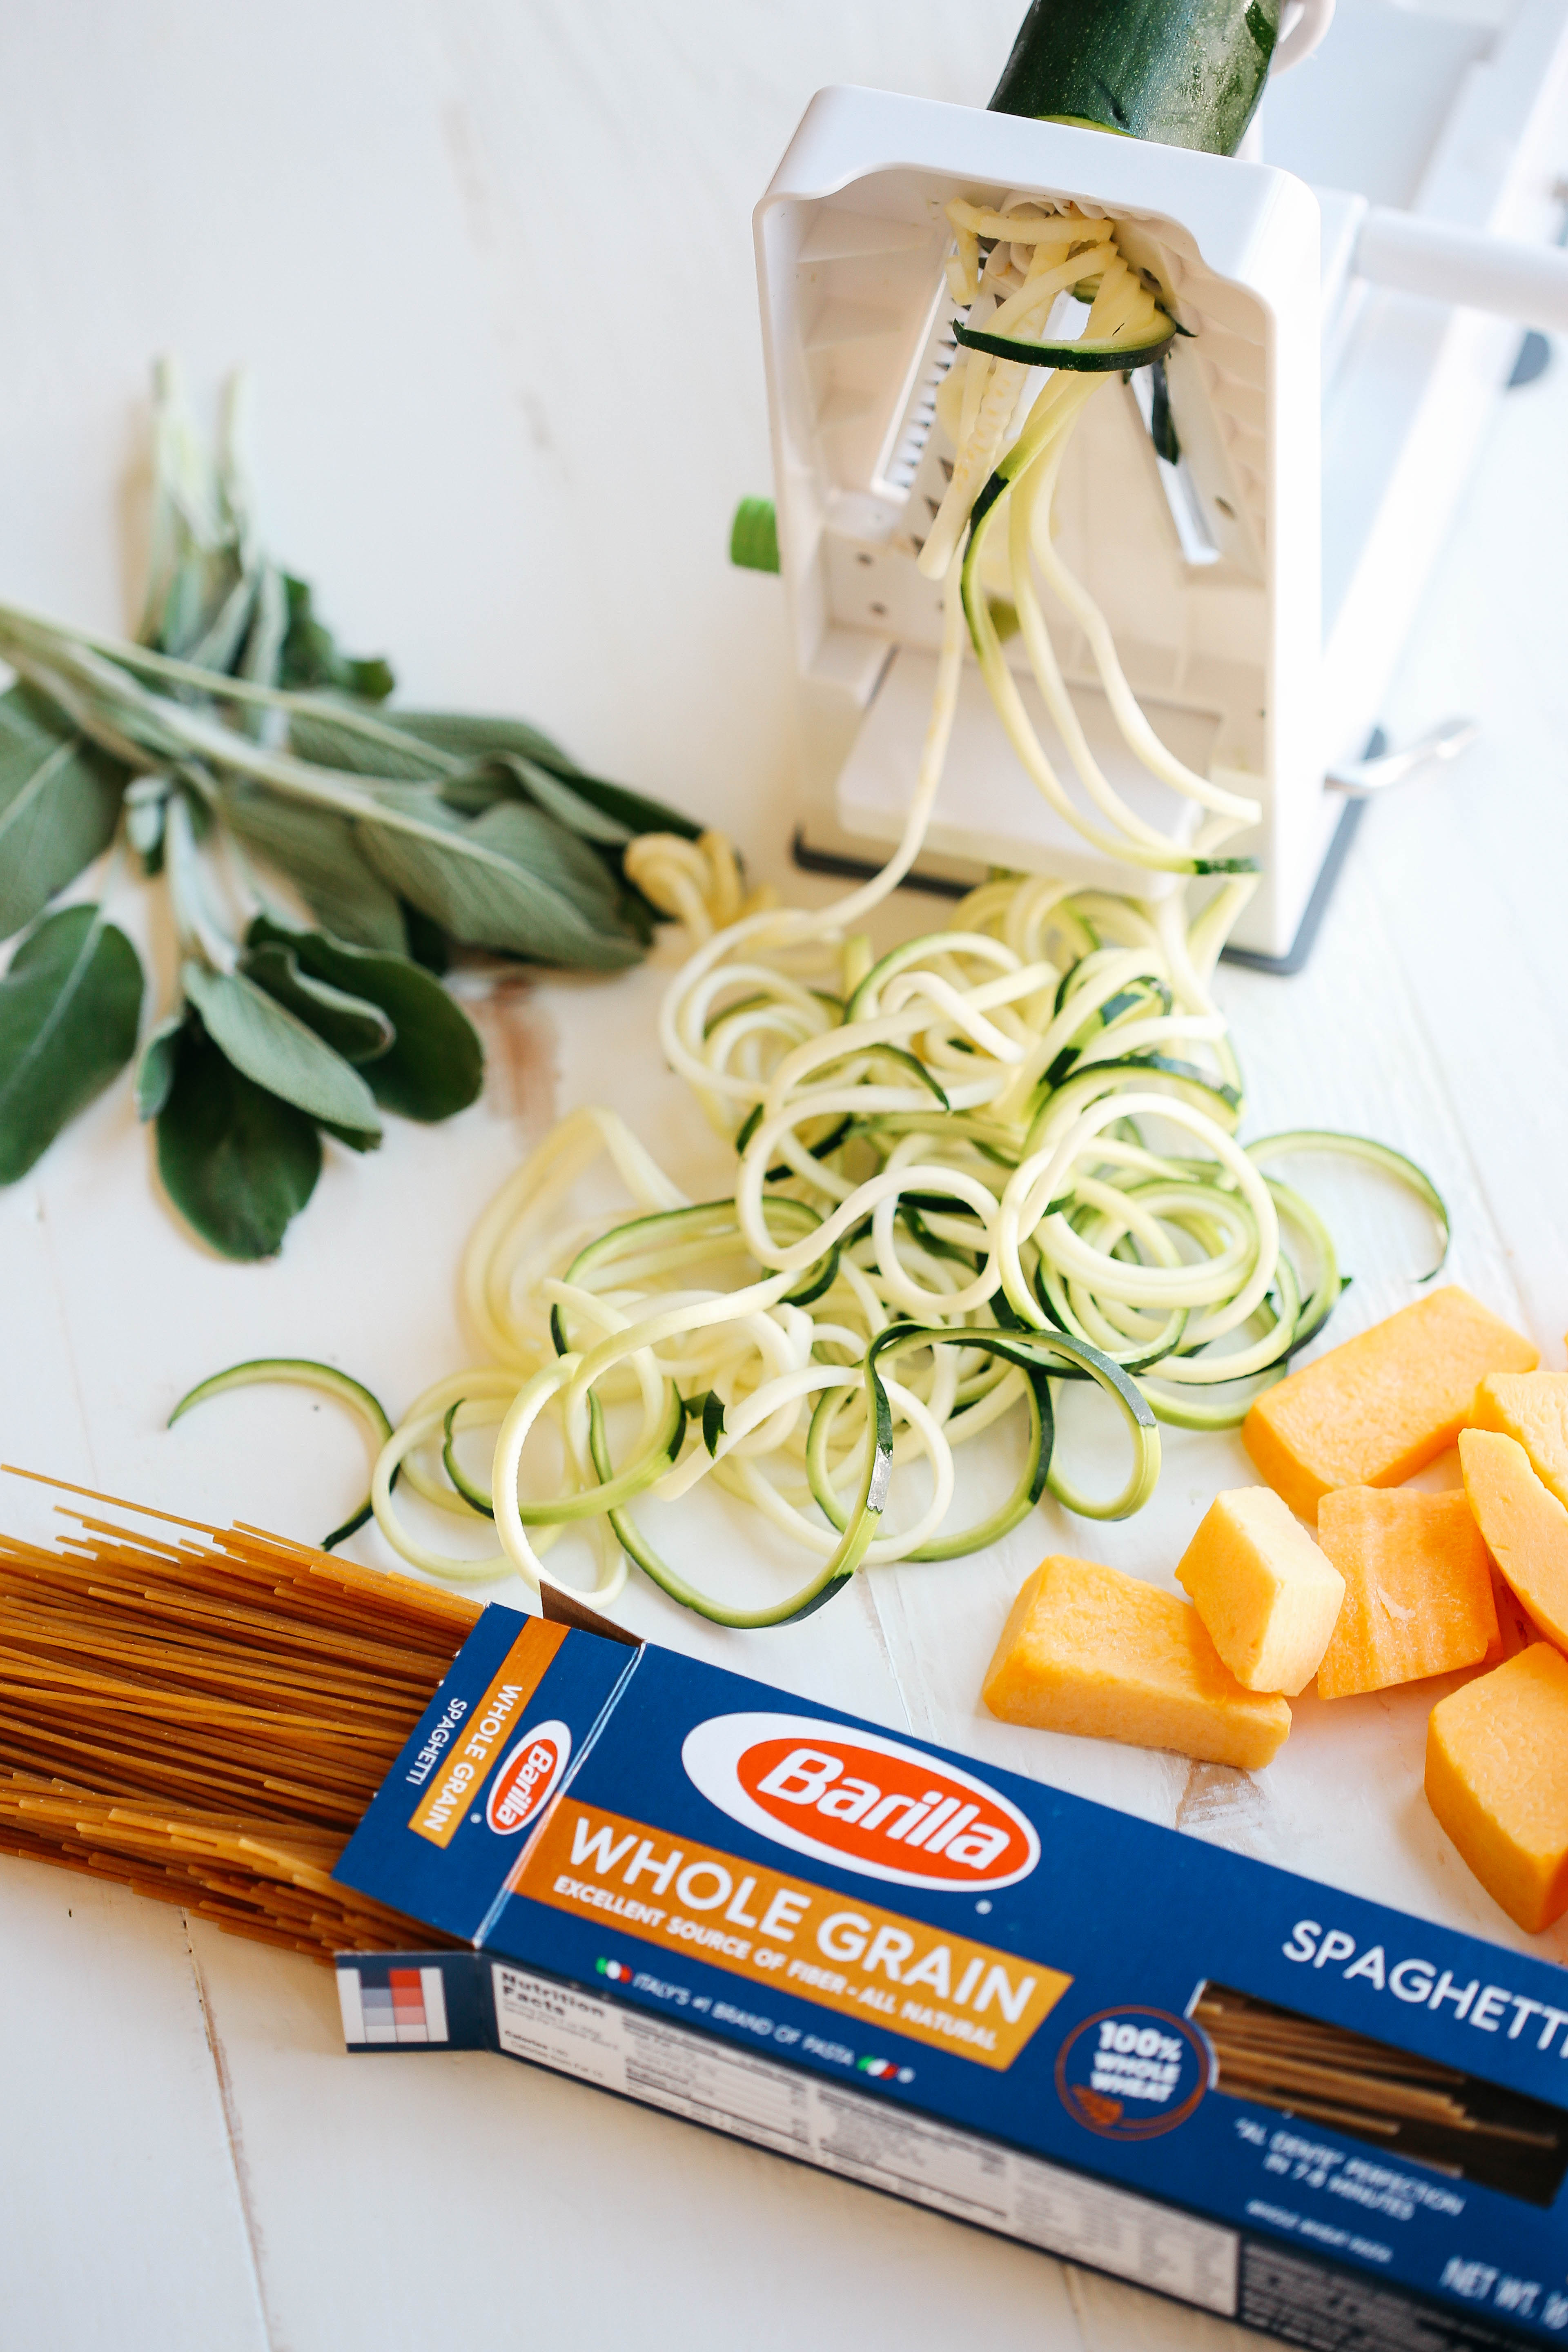 This Butternut Squash & Sage Spaghetti with Zucchini Noodles that is vegan, dairy-free and can easily be made in just 30 minutes using a few simple healthy ingredients!